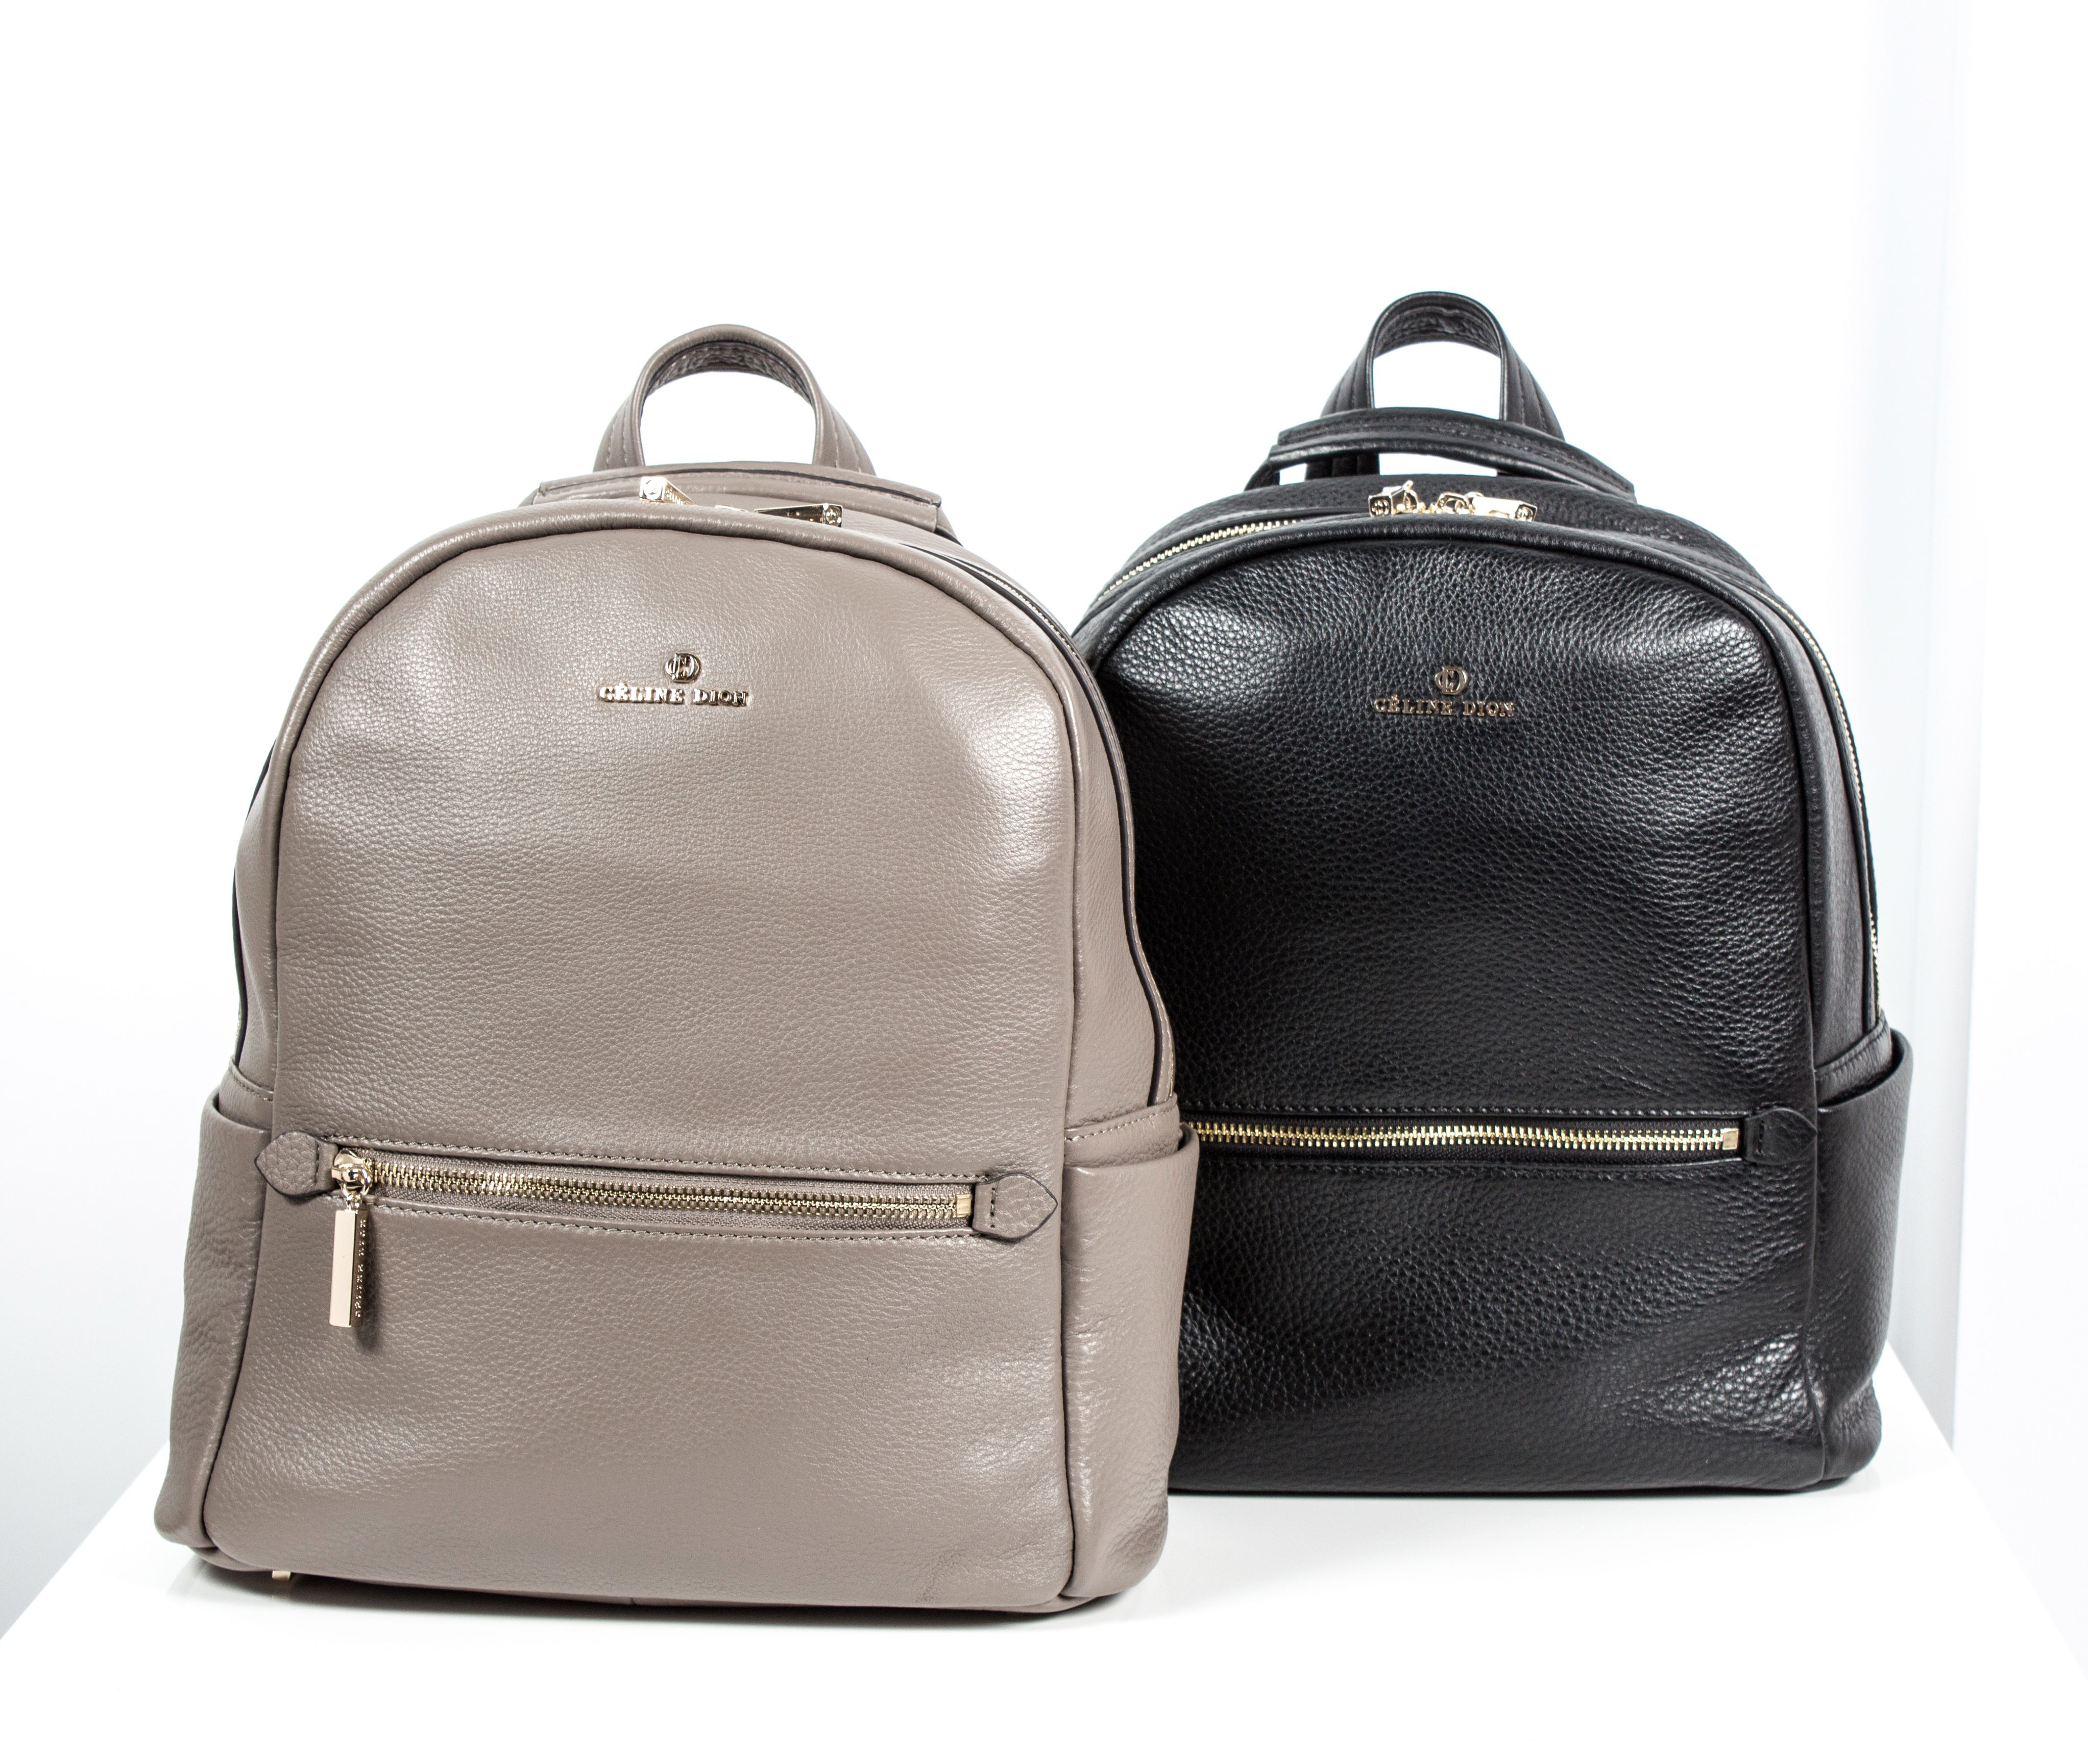 24a1e1e09ee9 ADAGIO - BACKPACK By Céline Dion  Zipped backpack with crossbody  convertible strap Front   back